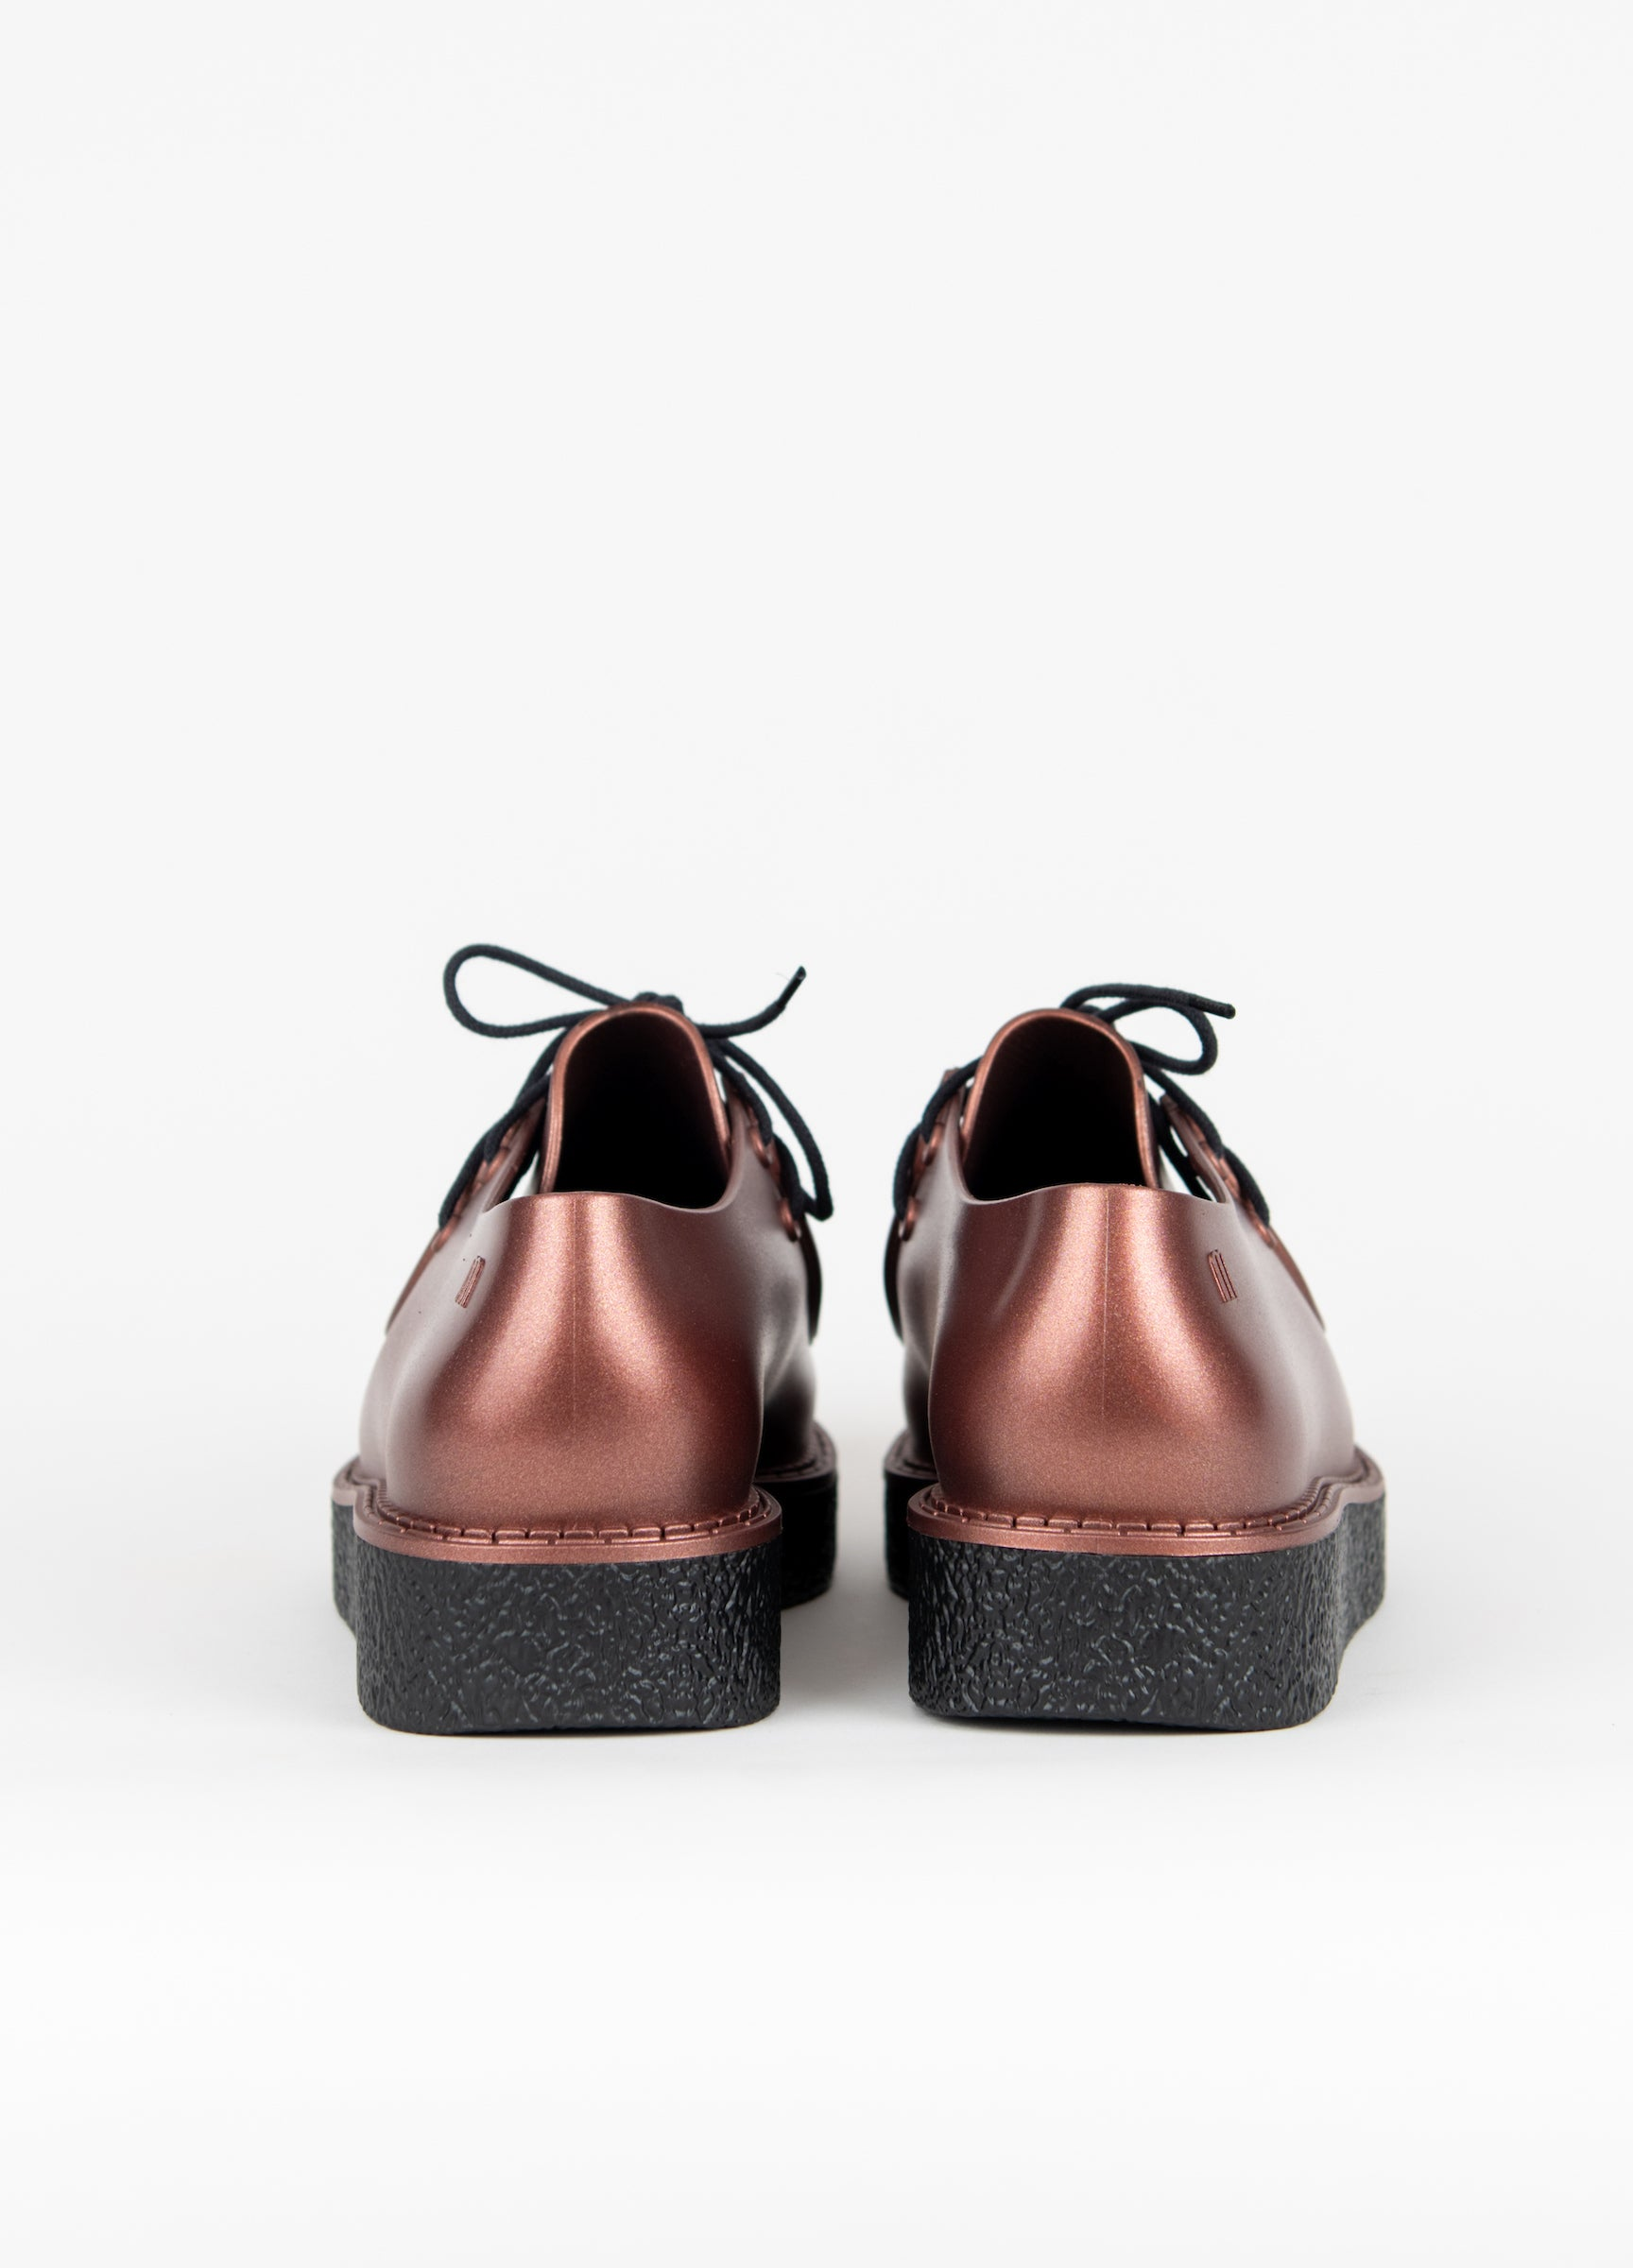 Clementines Melissa Billy Creepers Copper Black Platform Non-Leather Women Shoes Seattle Back View